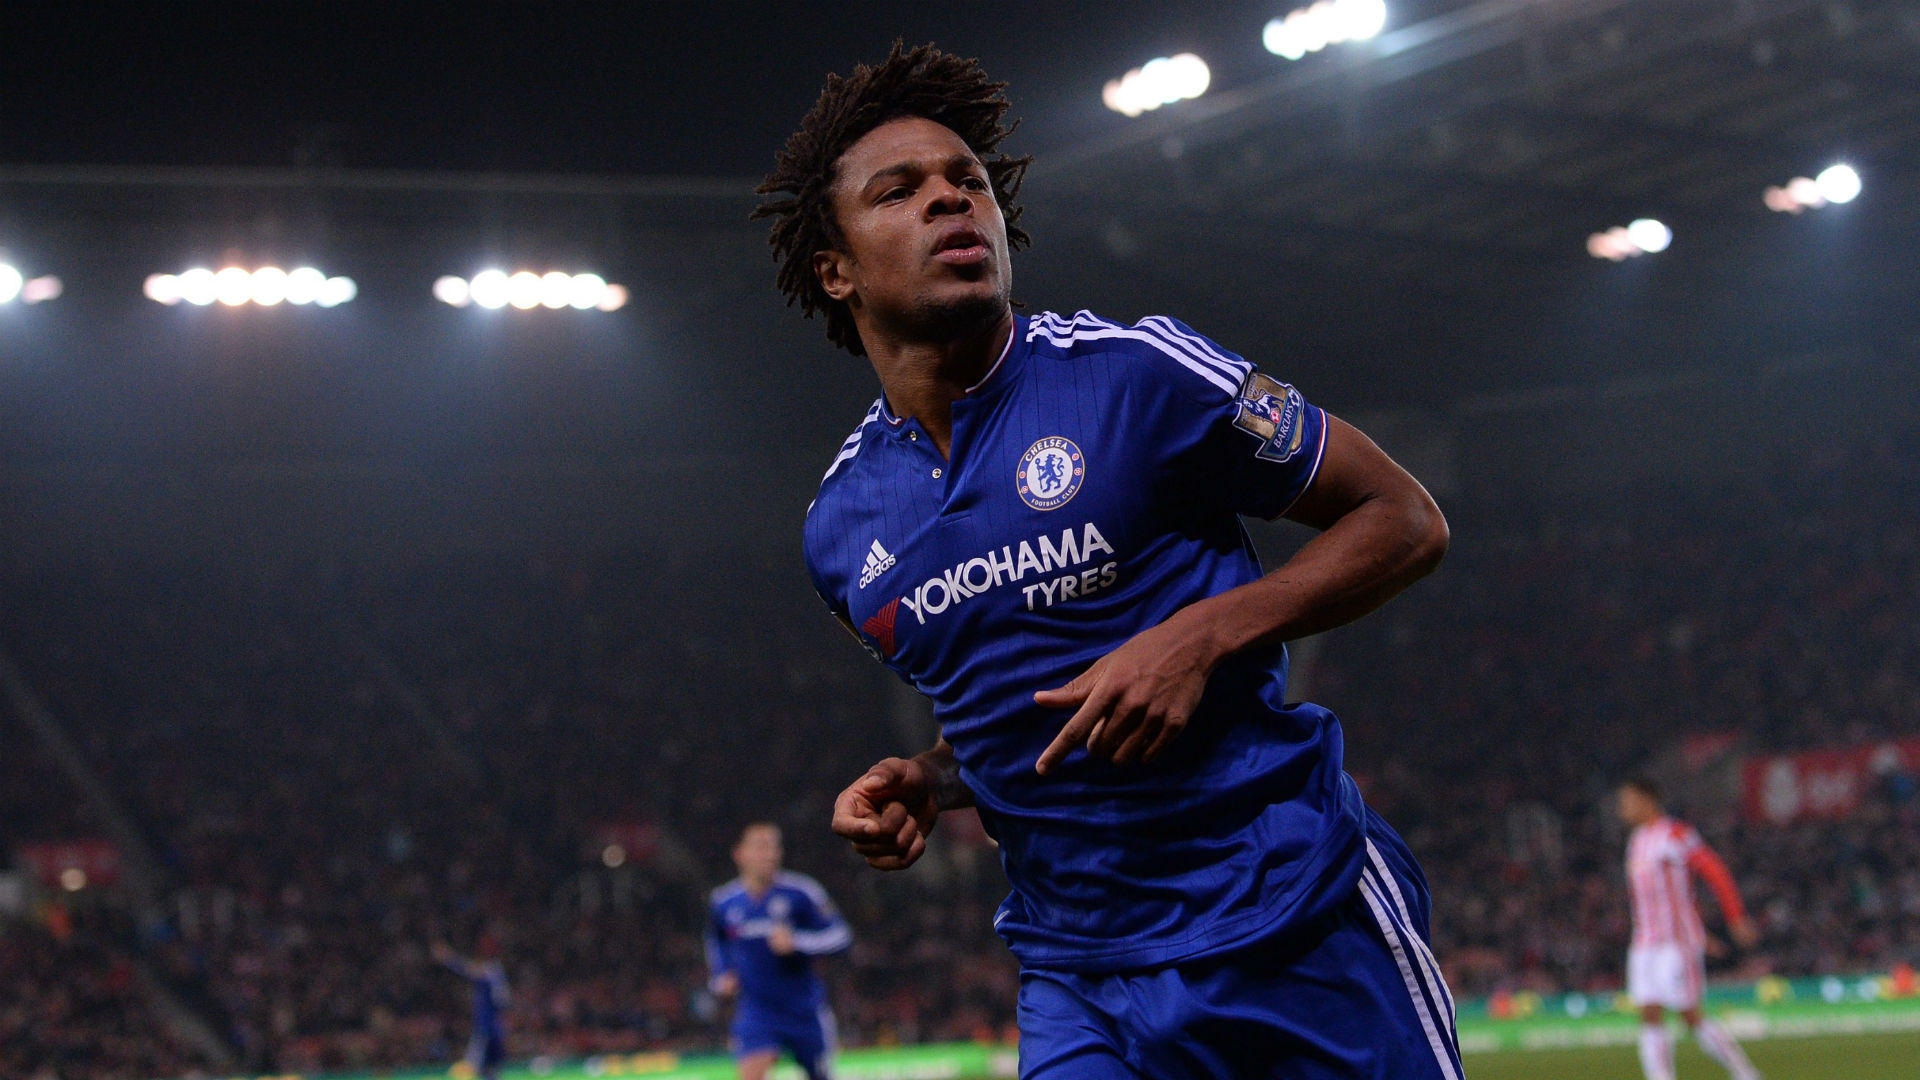 Loic Remy League Cup Stoke v Chelsea 271015